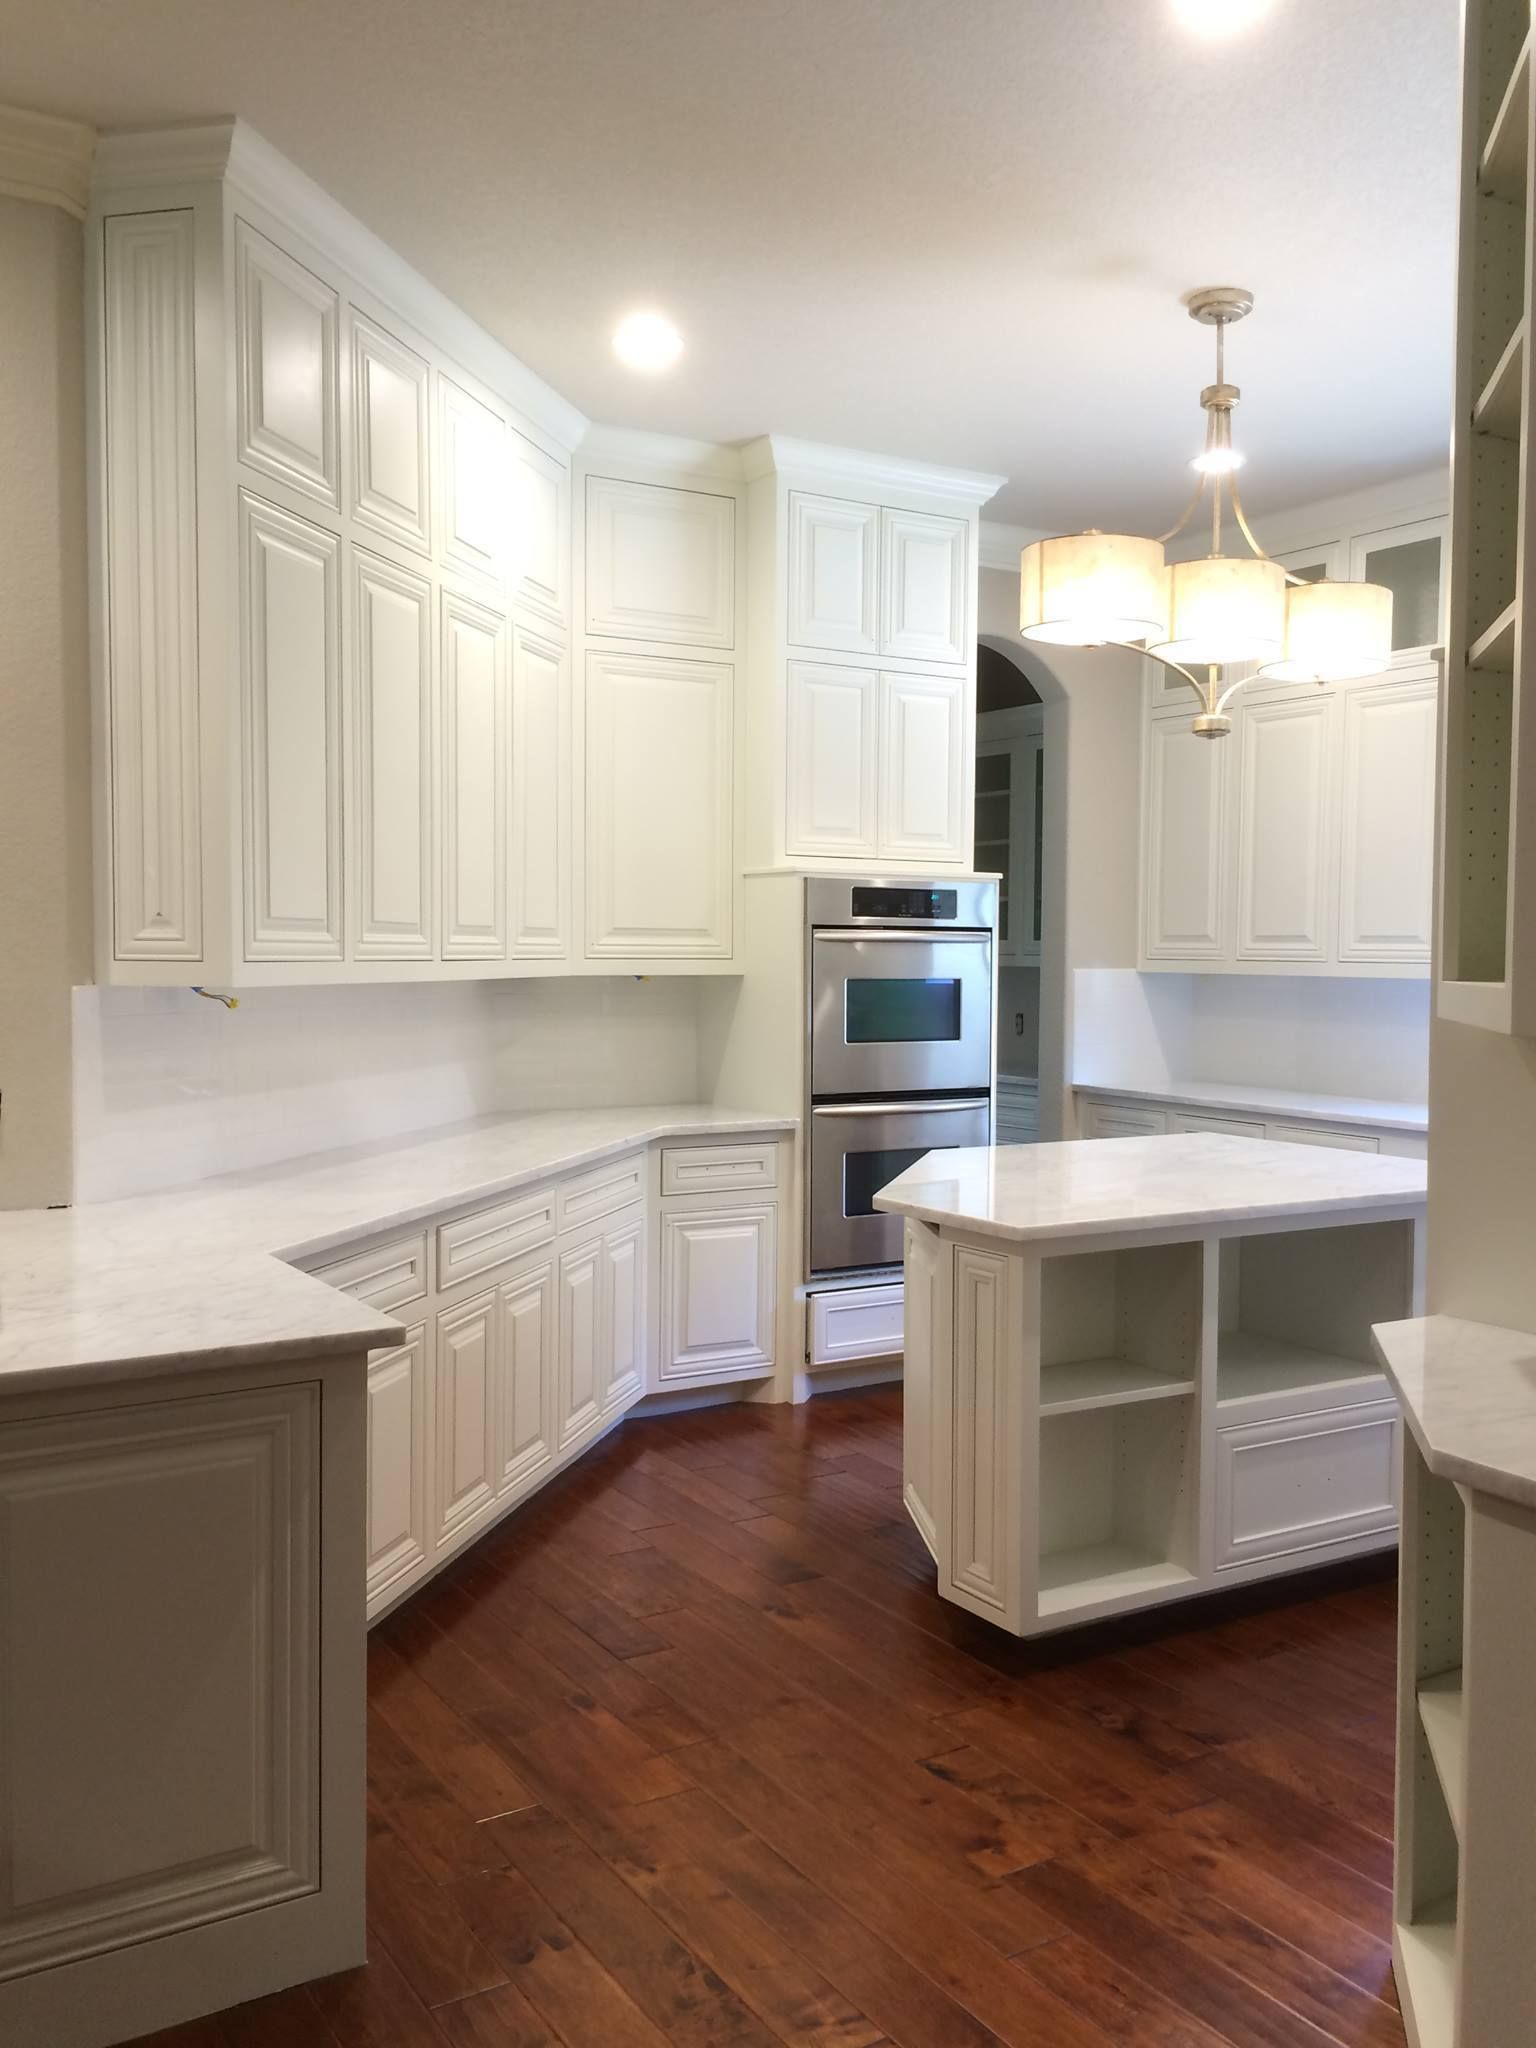 Best Knotty Alder Refinished Cabinetry Painted Cabinets 400 x 300